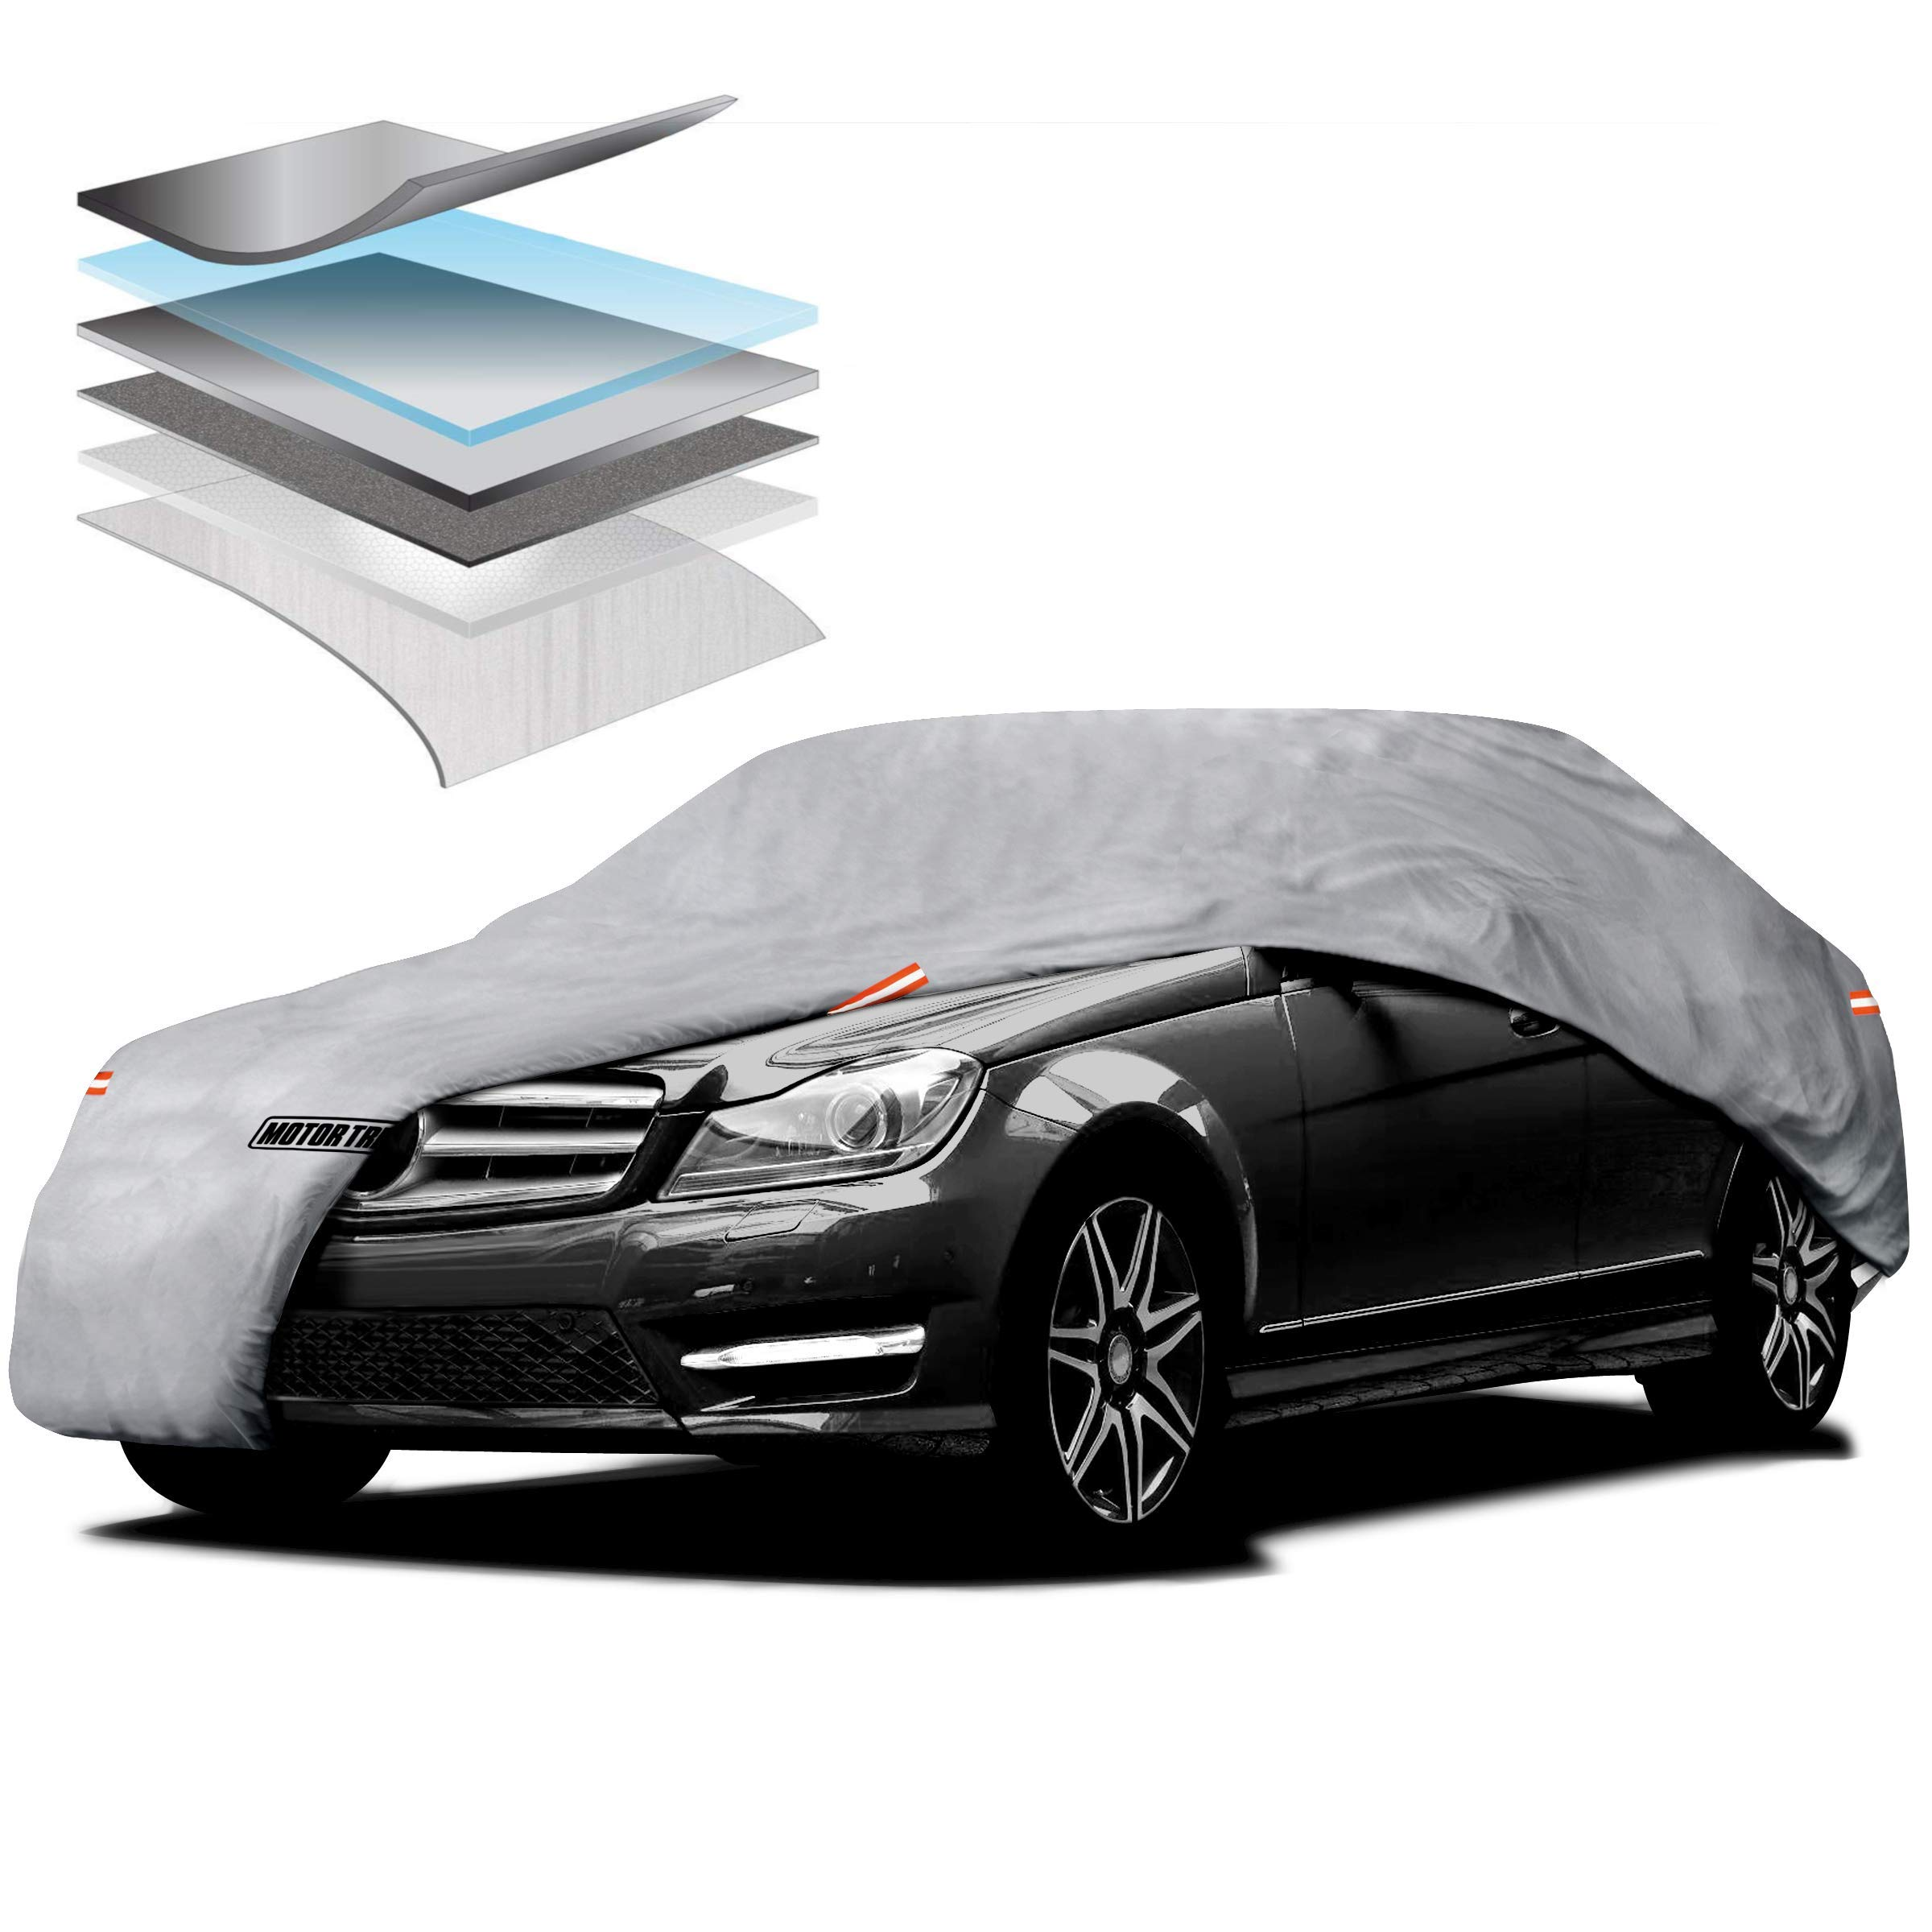 Motor Trend M5-CC-3 L (7-Series Defender Pro-Waterproof Car Cover for All Weather-Snow, Wind, Rain & Sun-Ultra Heavy 6 Layers-Fits Up to 190'')